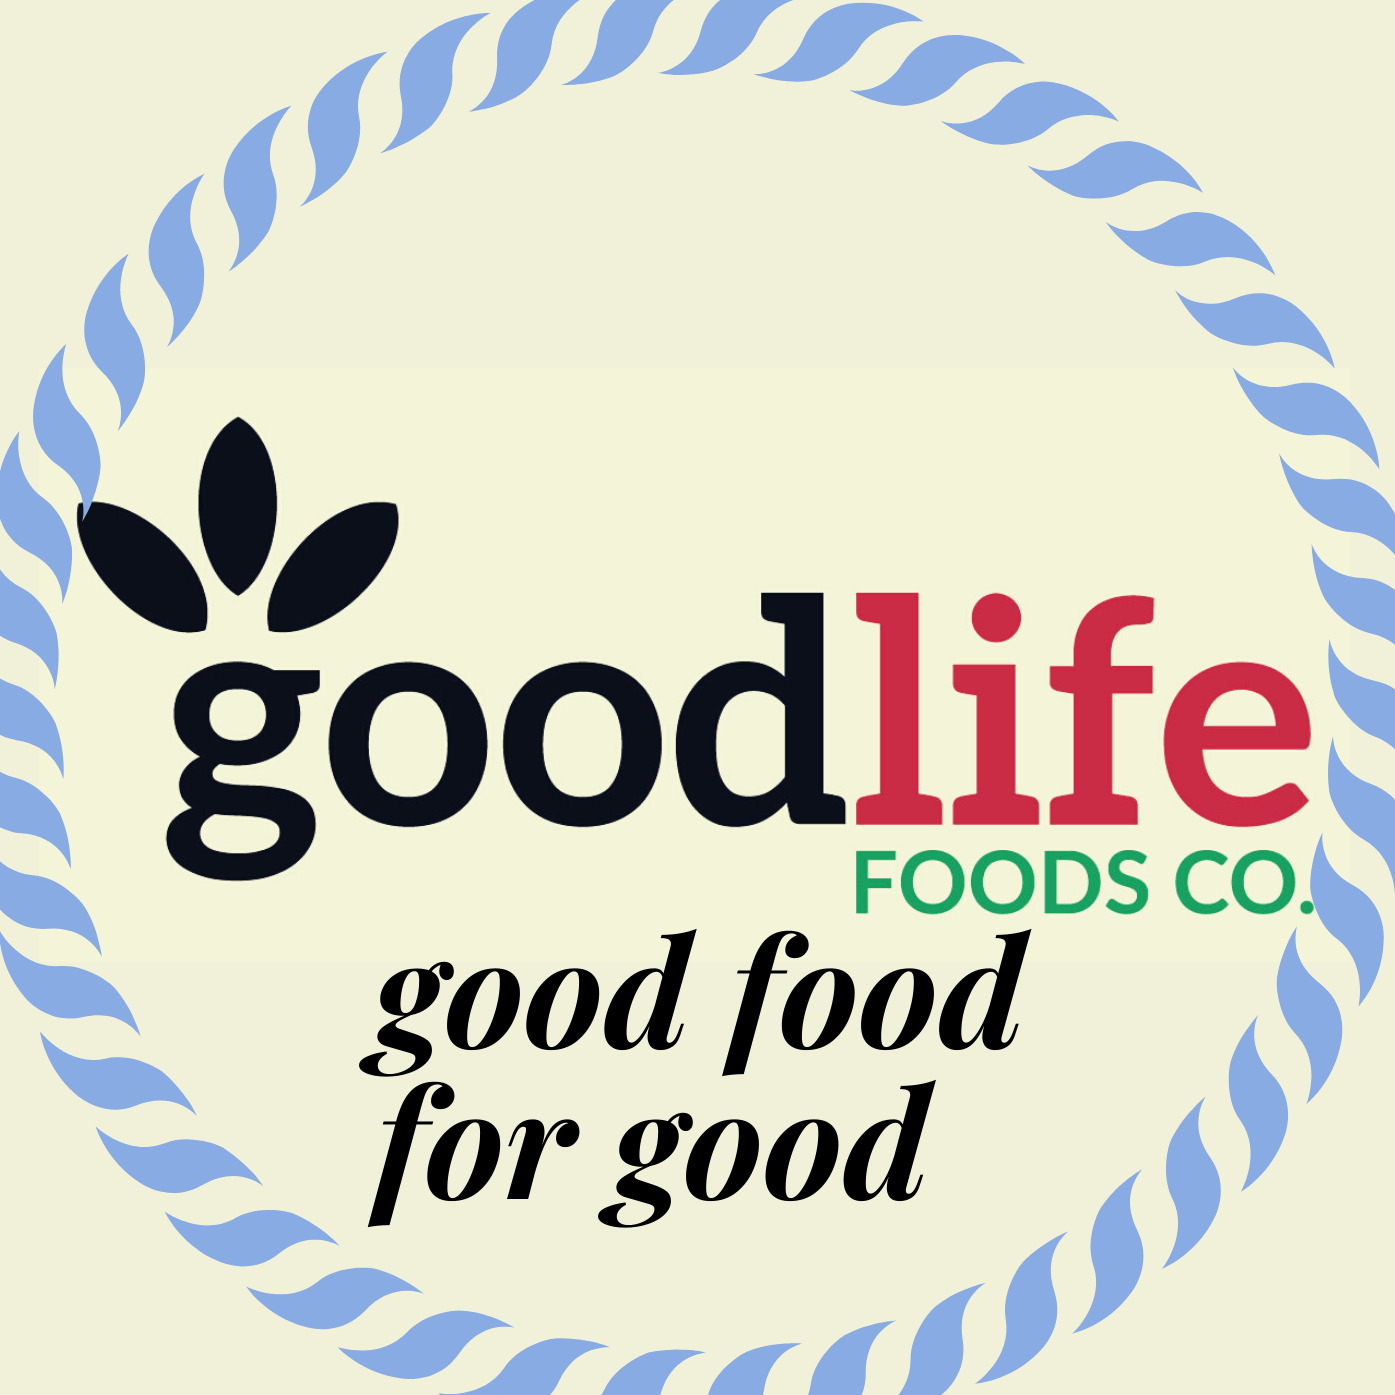 Good Life Foods Co.